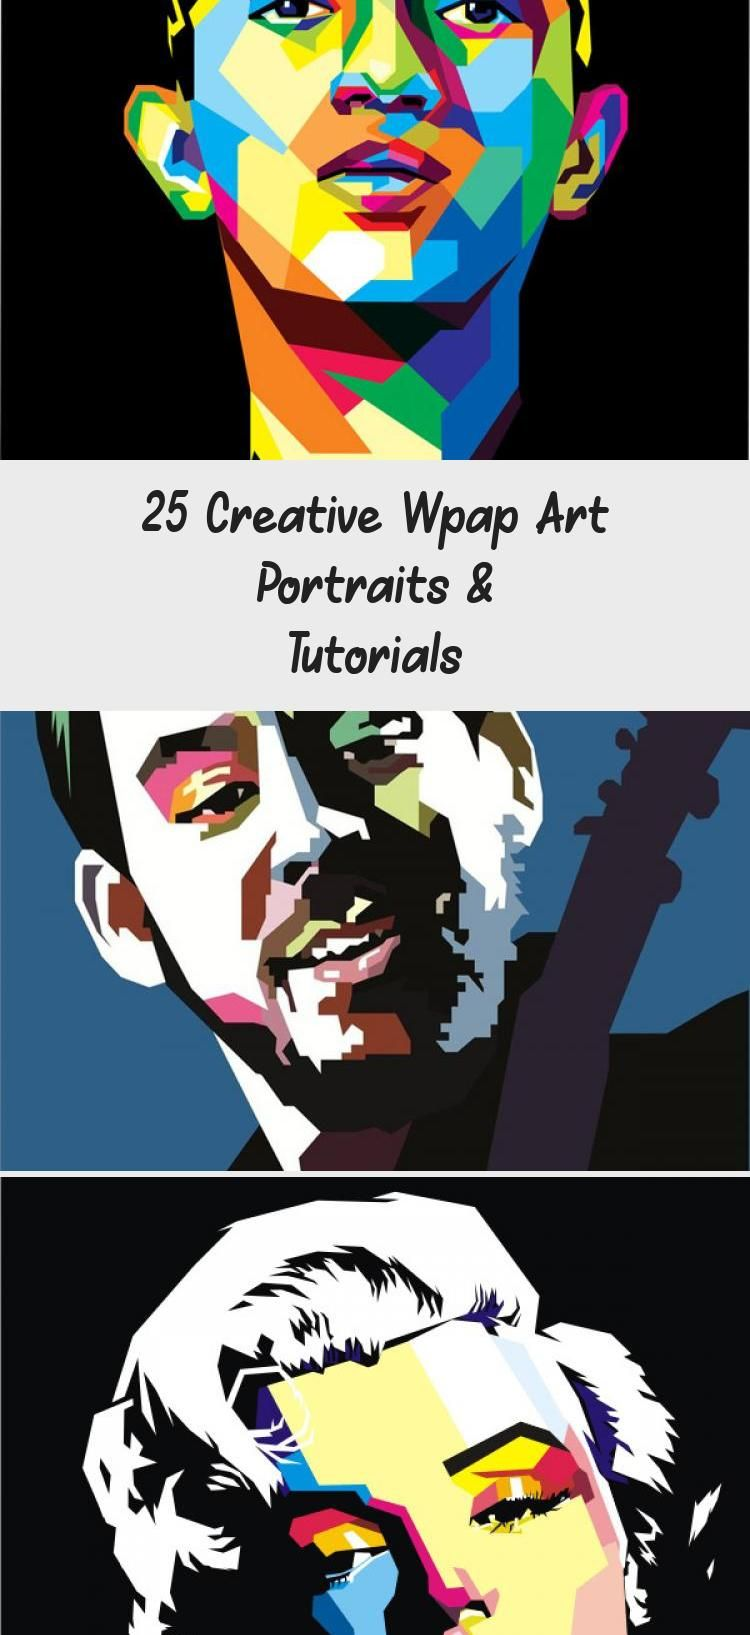 25 Creative Wpap Art Portraits & Tutorials ART in 2020